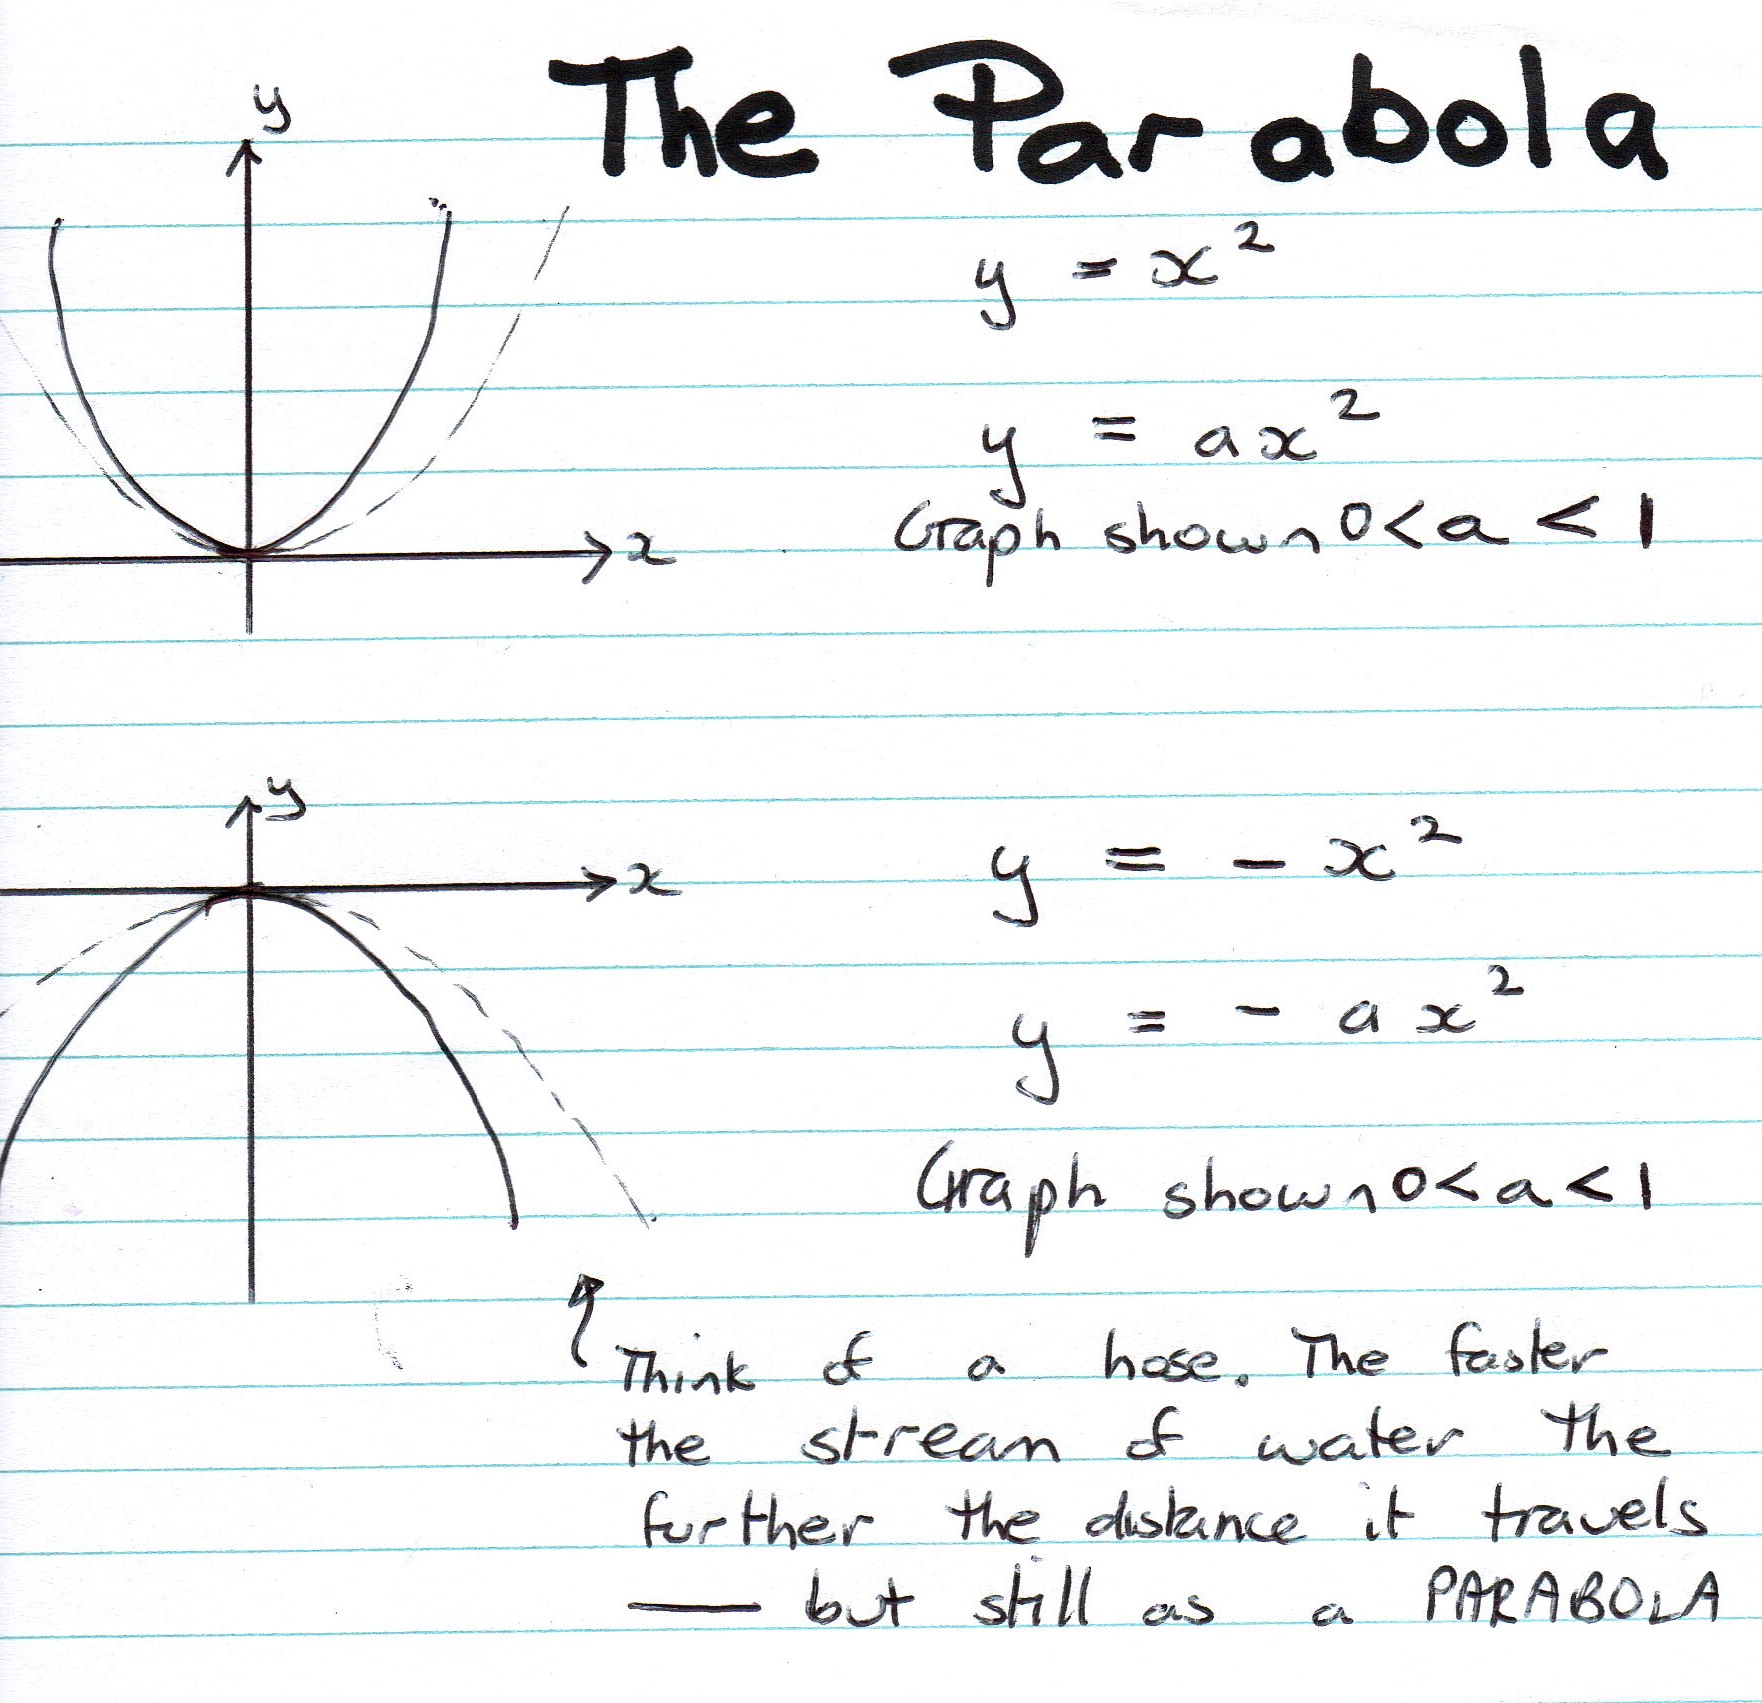 worksheet Parabola Worksheets parabola correction mathspig blog how maths solved a real murder correction